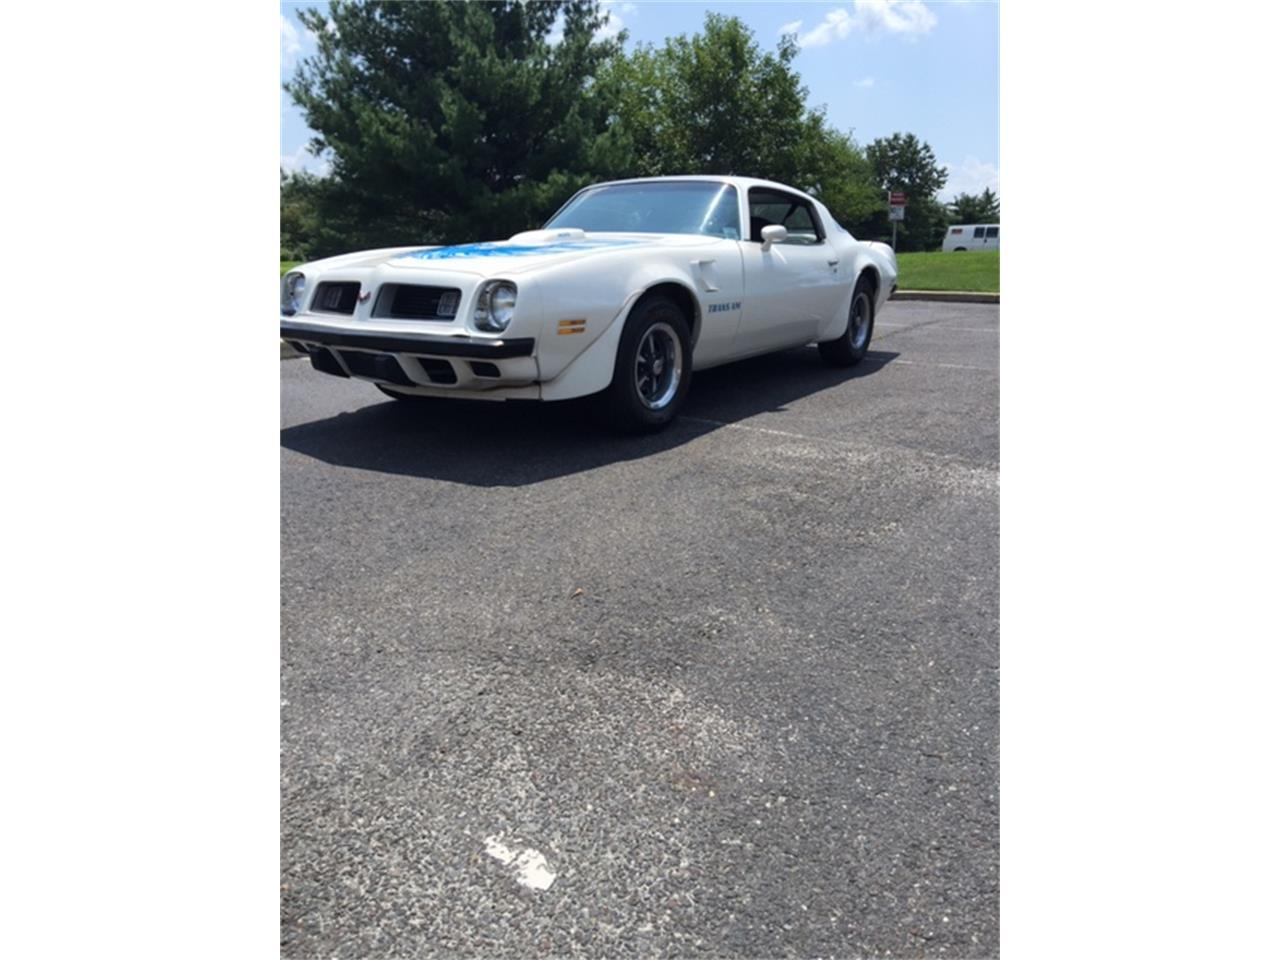 1975 Pontiac Firebird Trans Am (CC-1240139) for sale in Franklinville, New Jersey